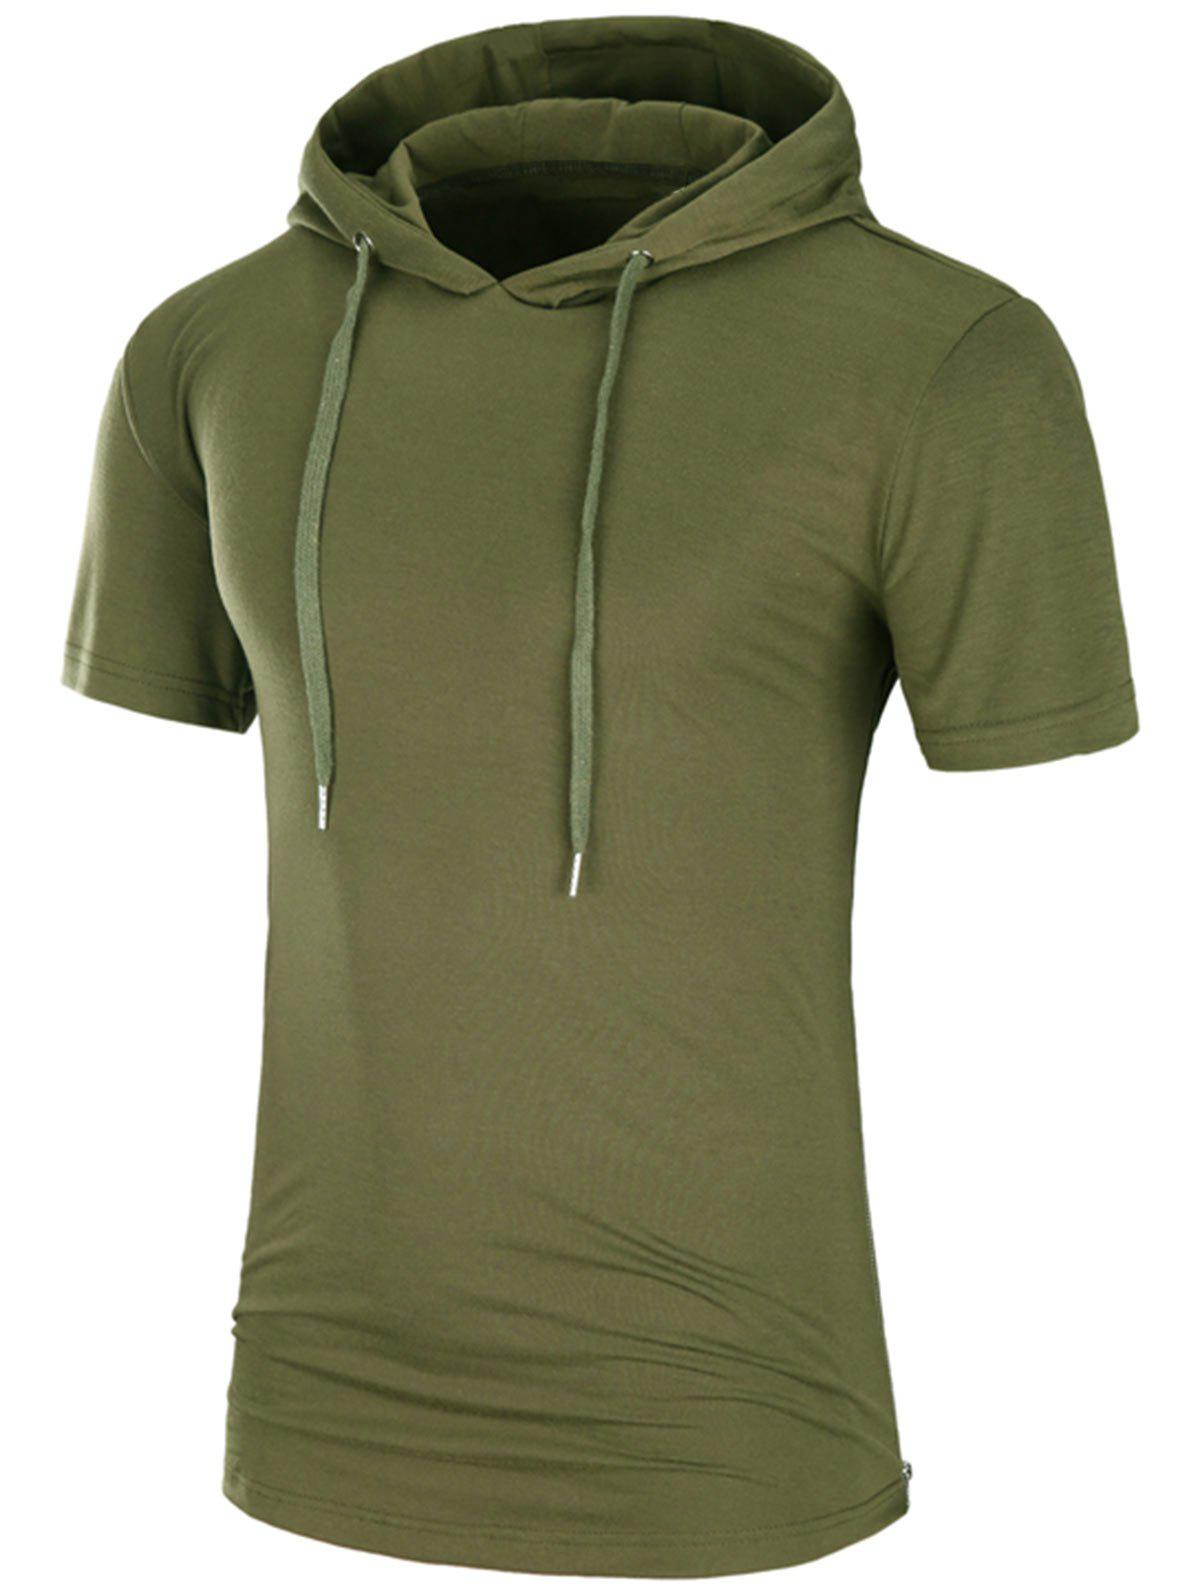 Hooded Side Zipper Longline T-Shirt - ARMY GREEN 2XL